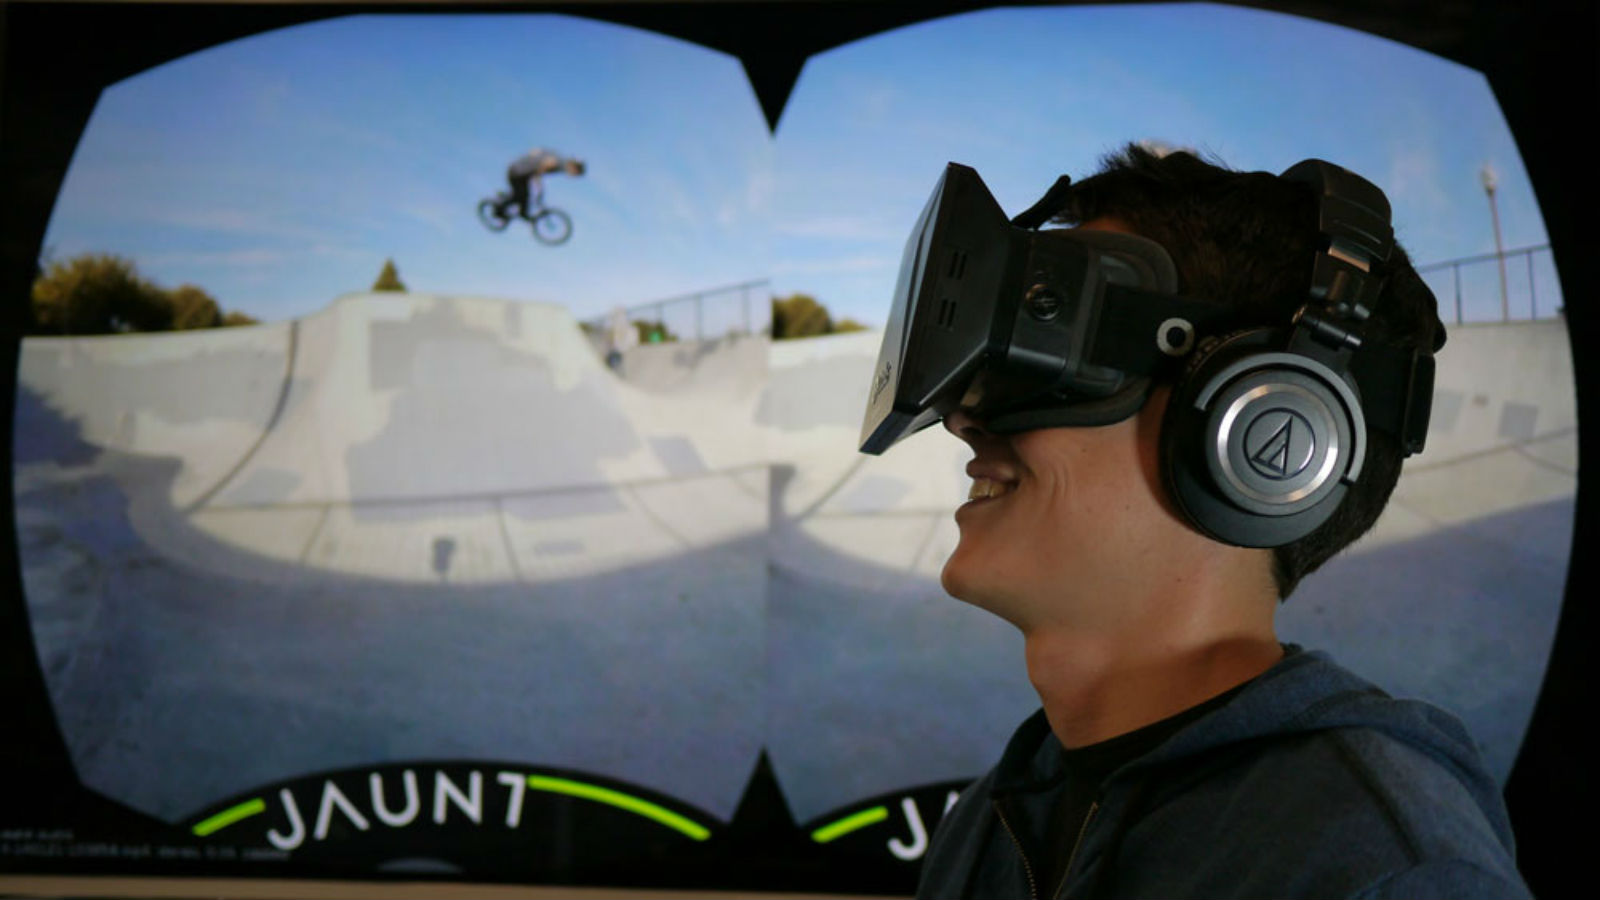 Virtual Reality headset goggles